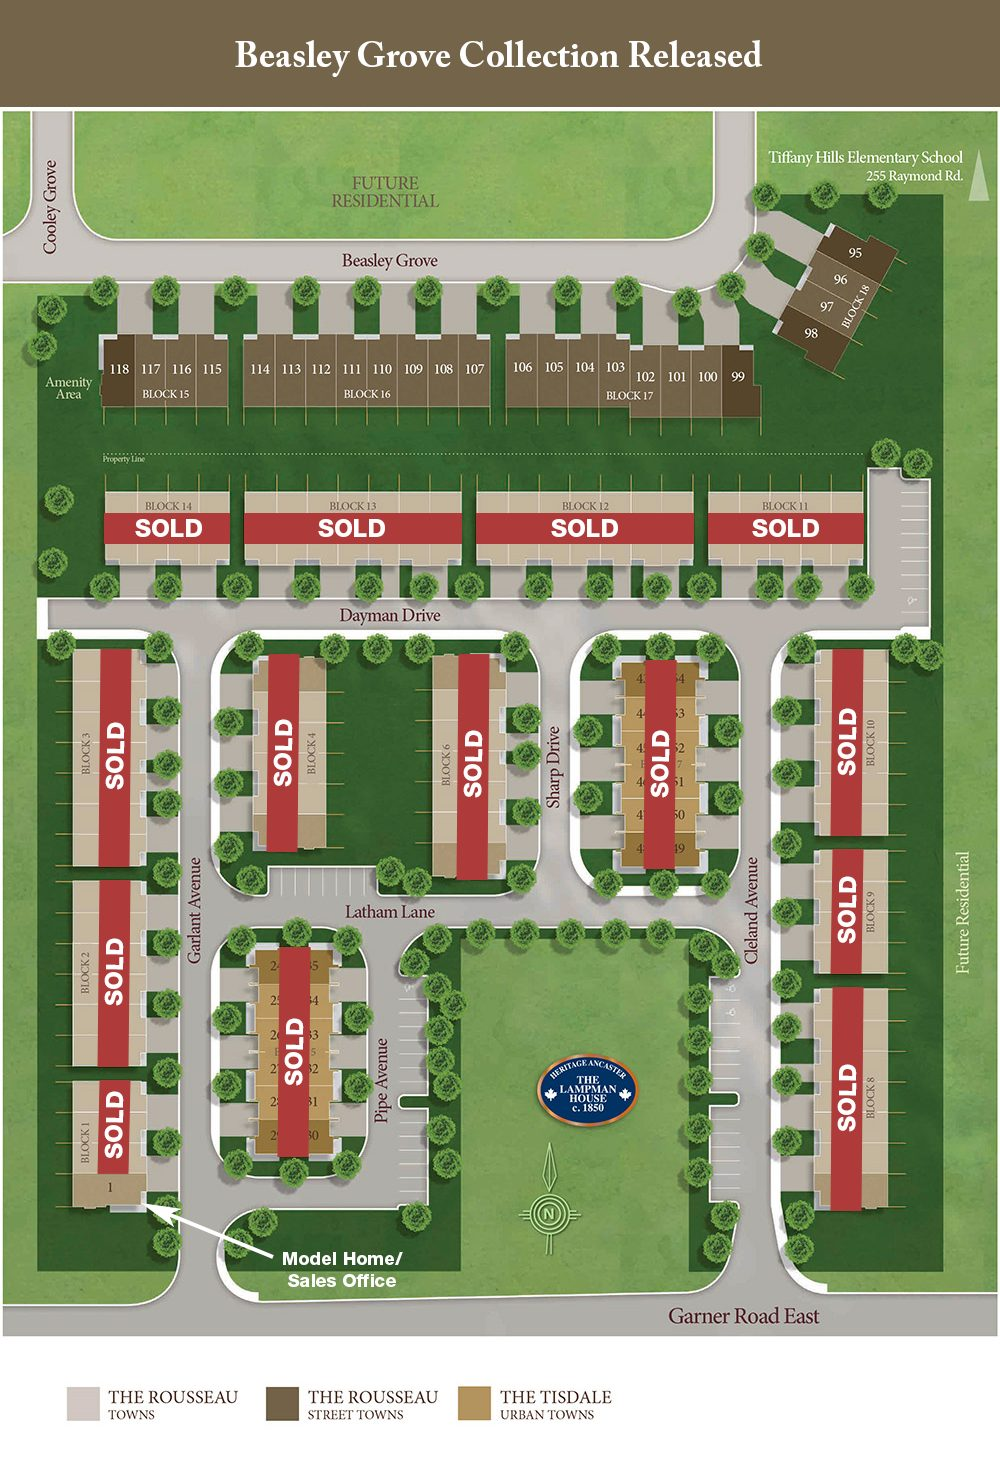 Garner Town Estates Site Plan showing SOLD Units and Beasley Grove Collection Released